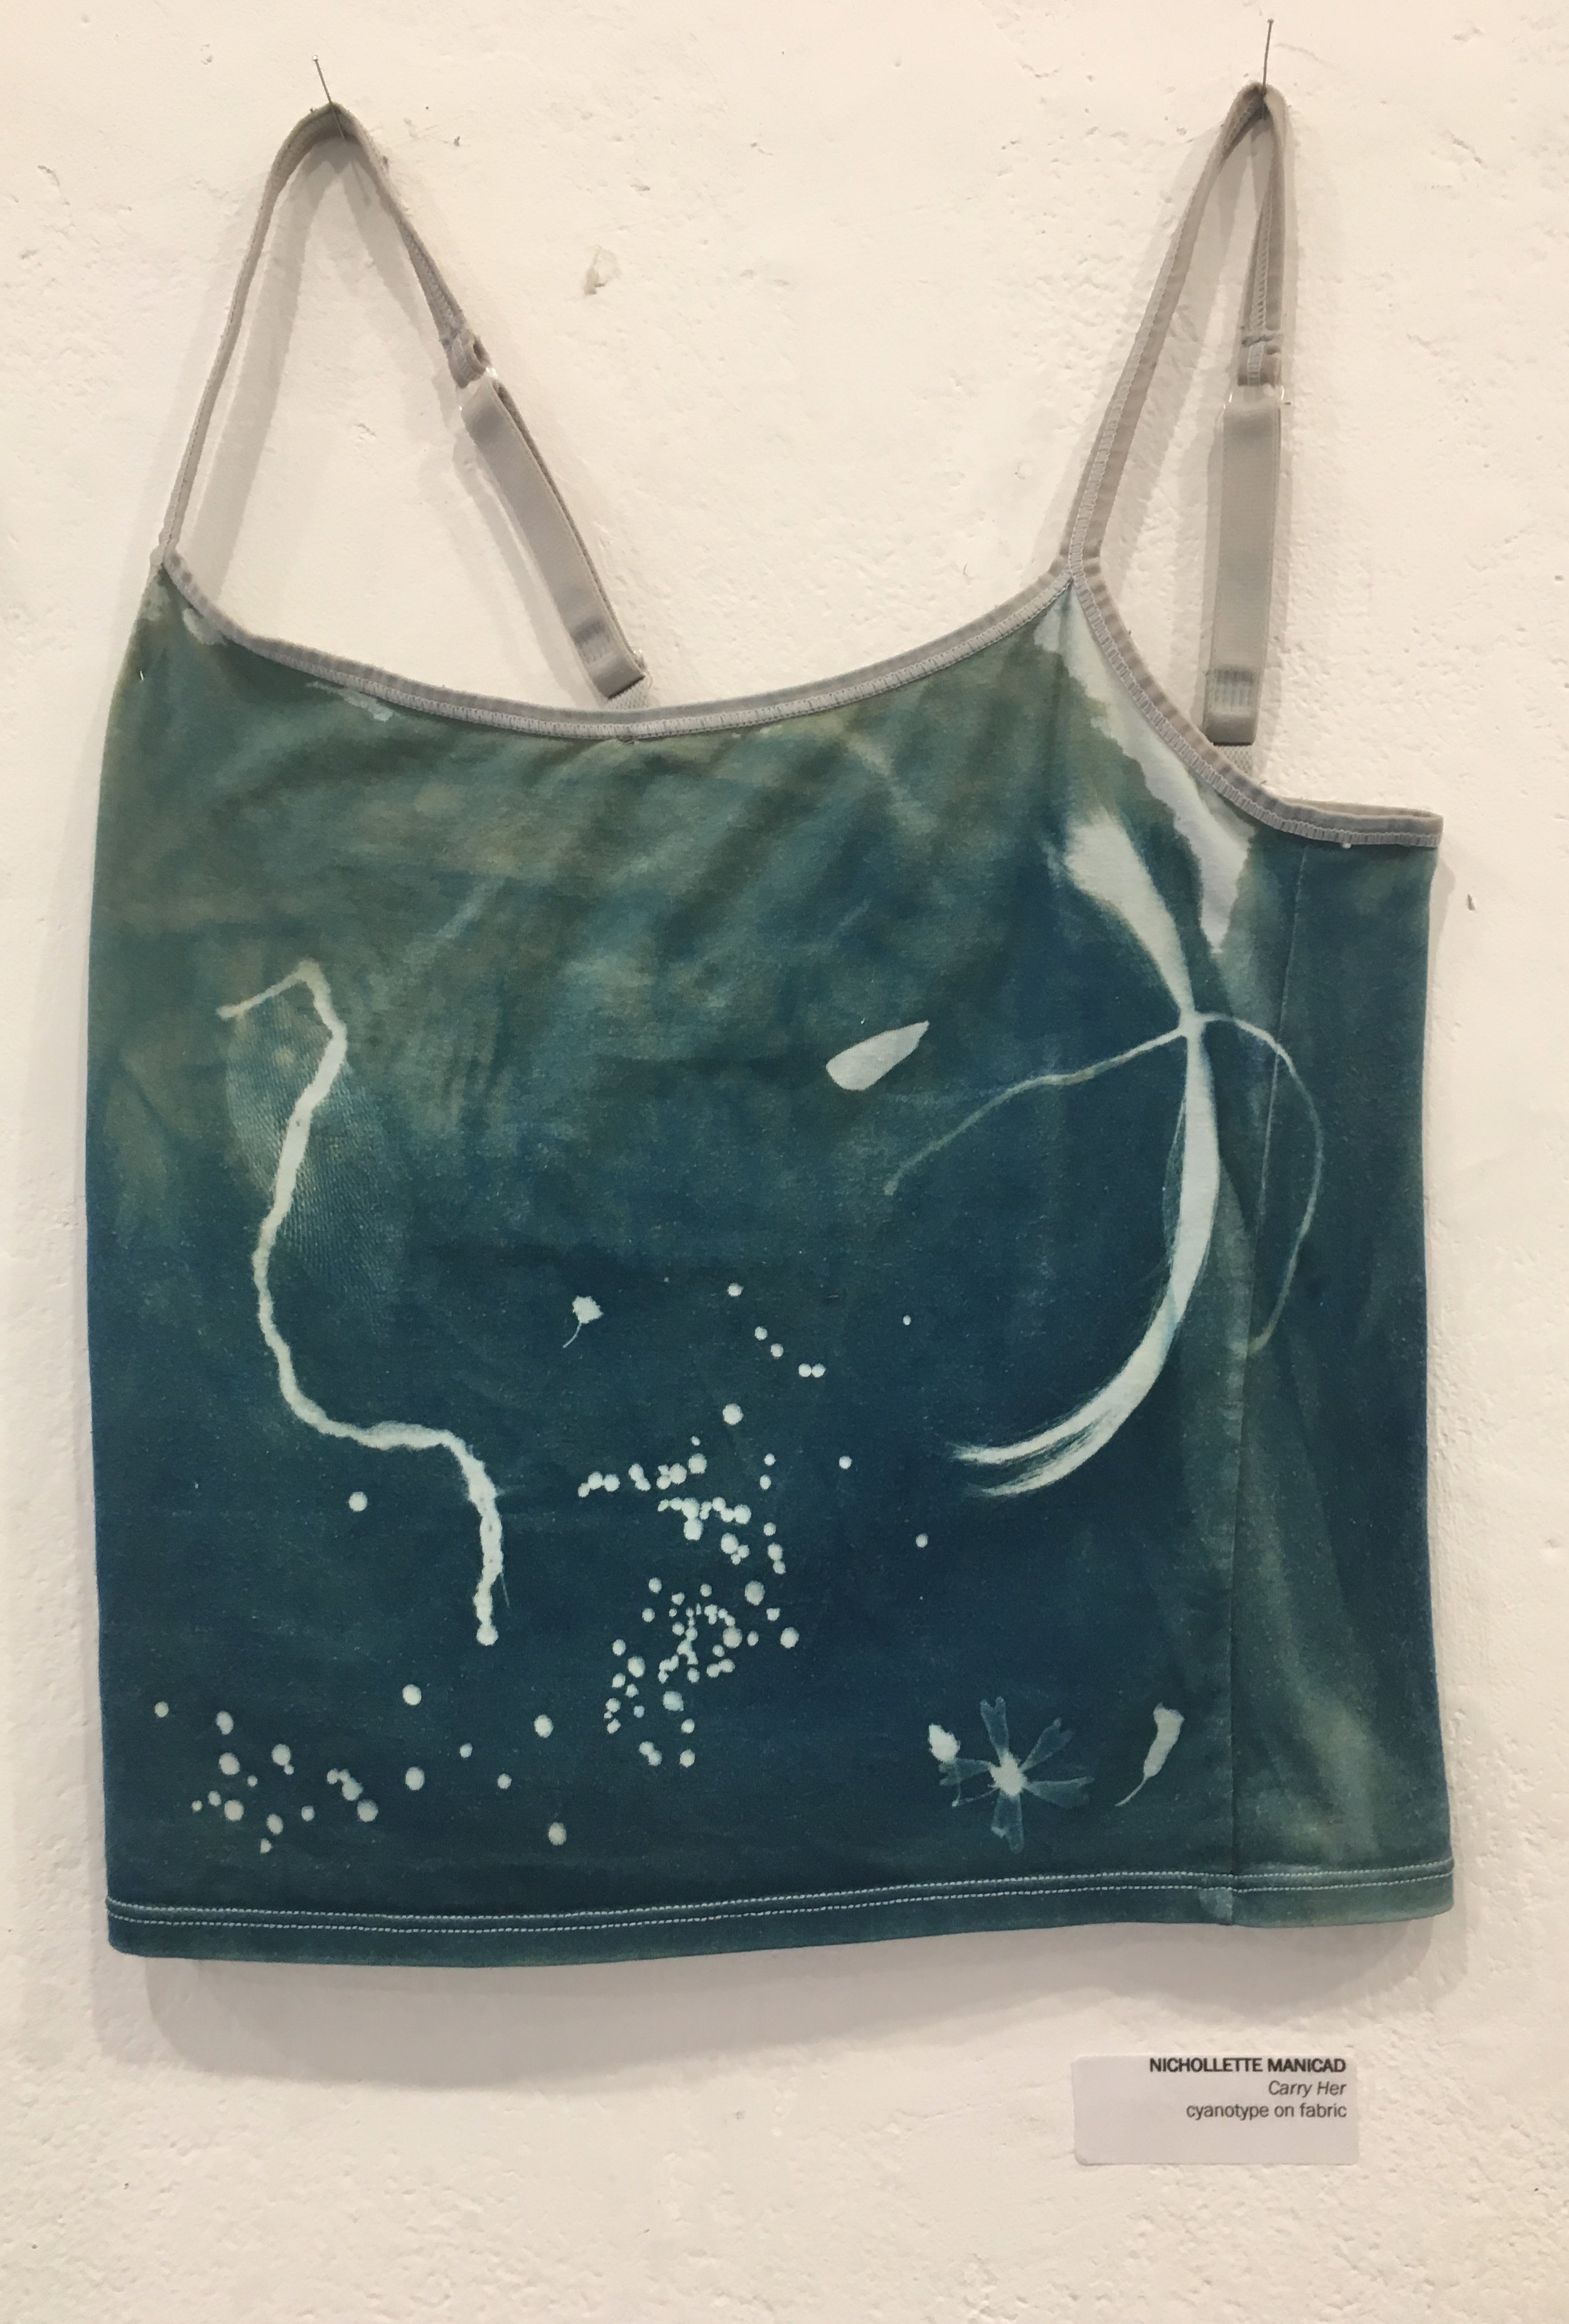 """Nichollette Manicad, """"Carry Her"""" (cyanotype on fabric)"""